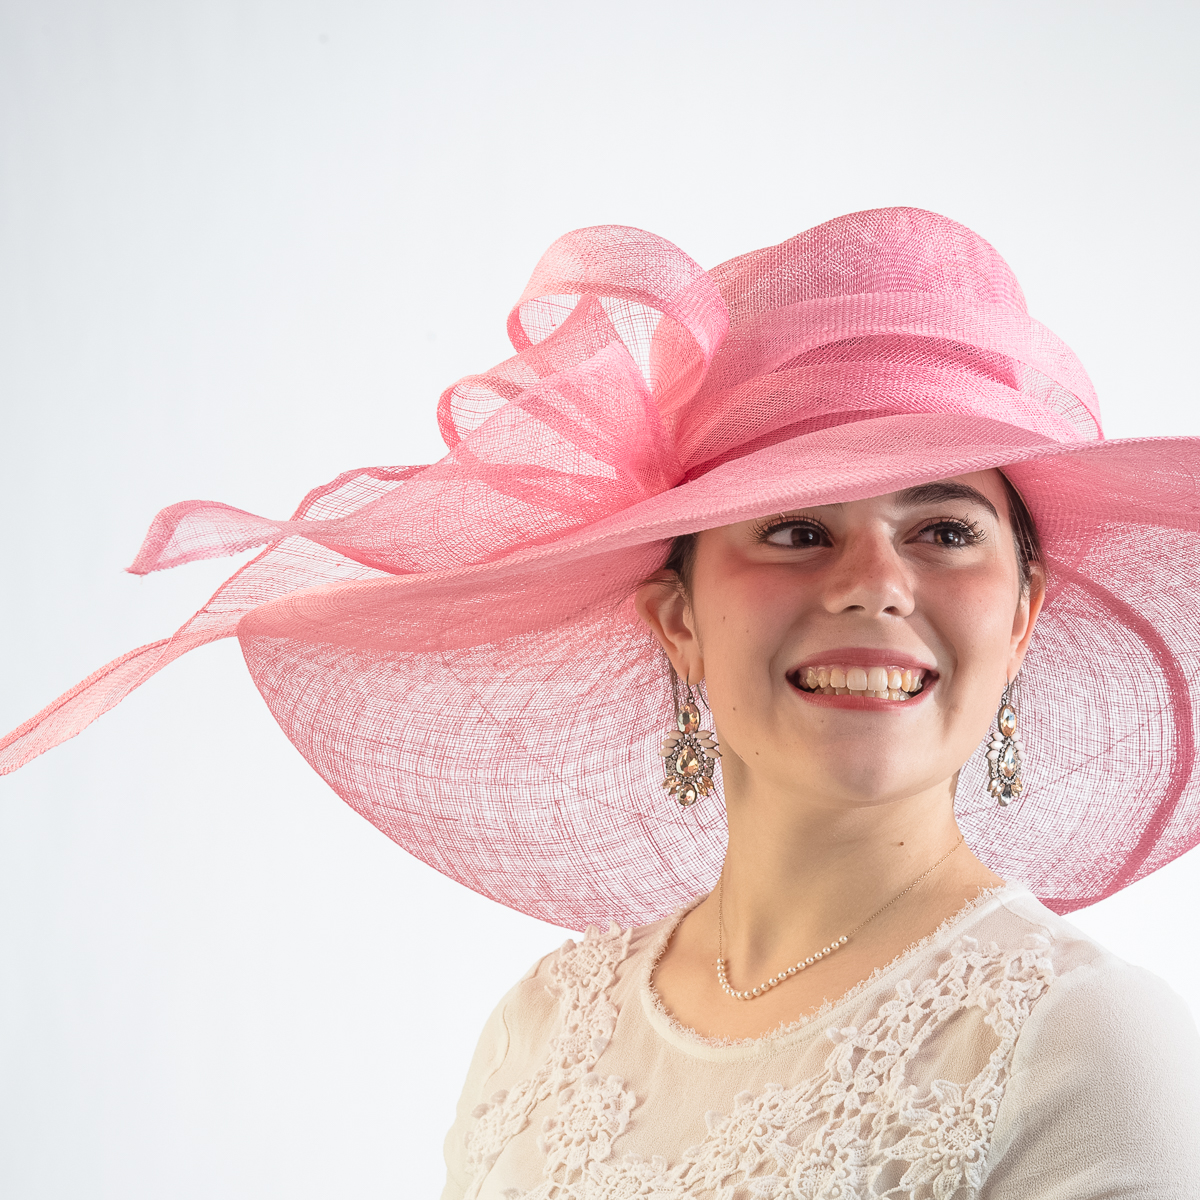 The UK's number one resource for Pink hats and fascinators. Specialising in Pink hats and fascinators for all occasions.